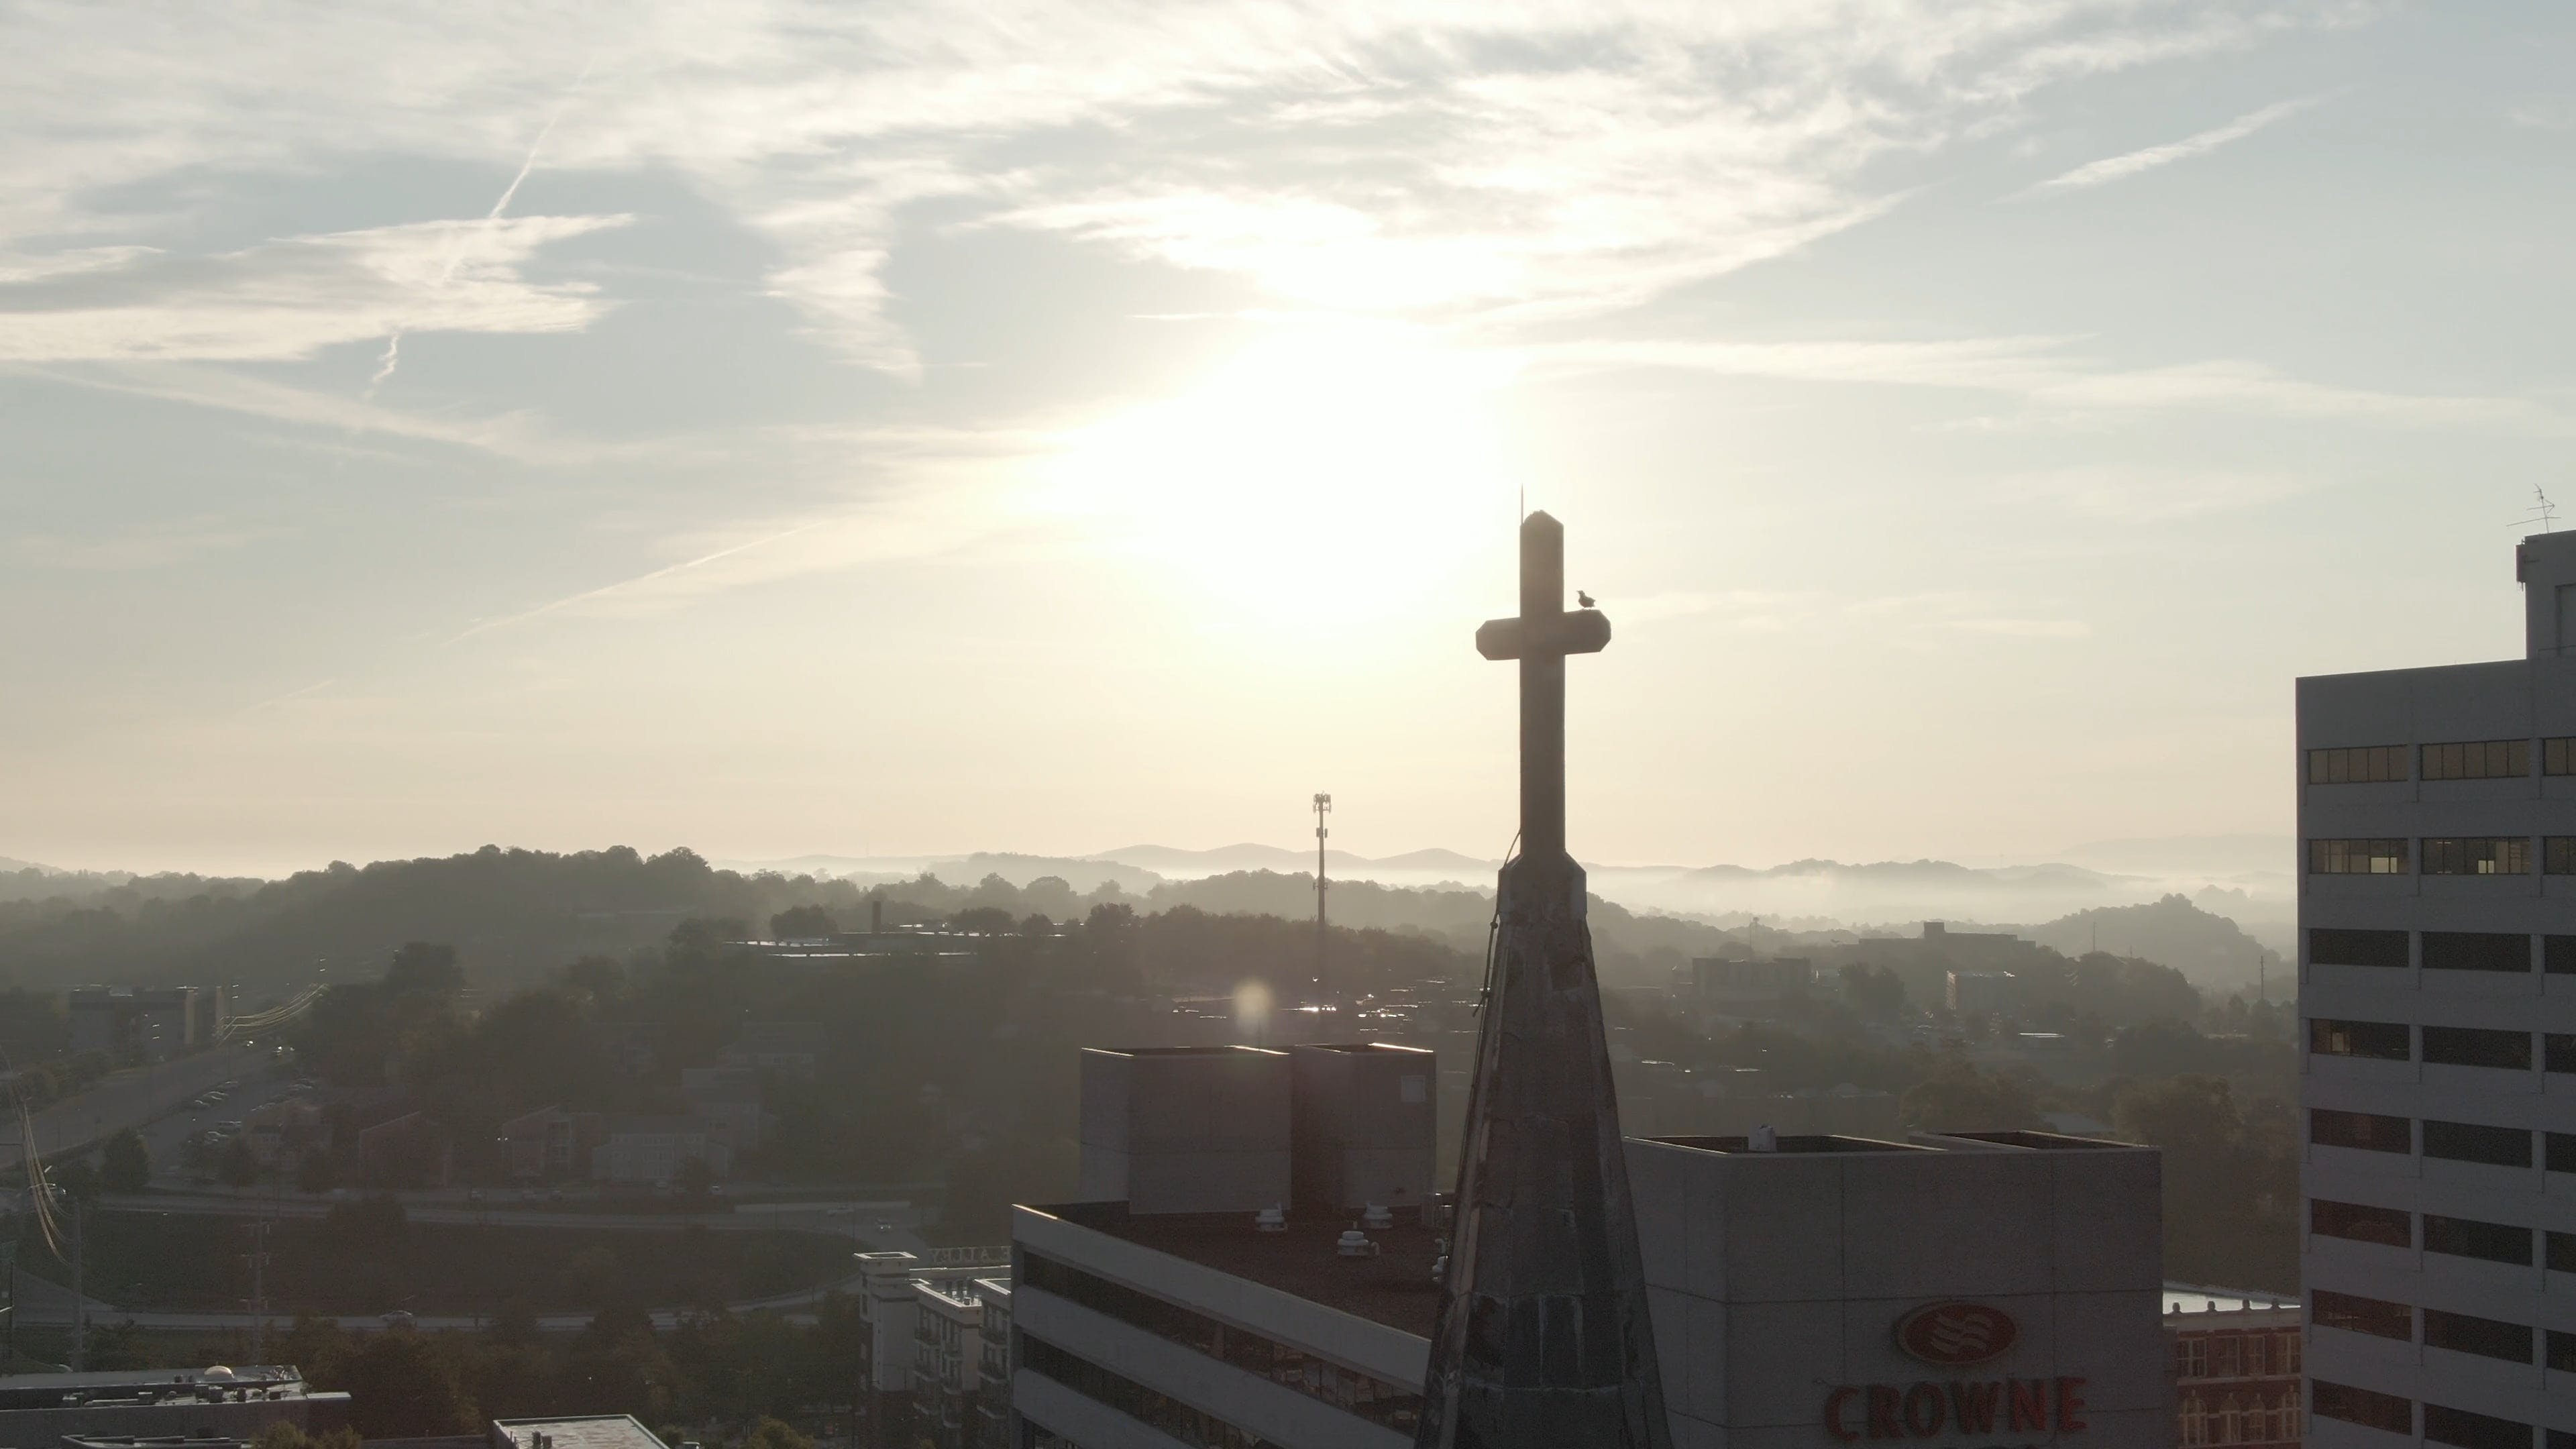 Drone Shot Of Church Tower